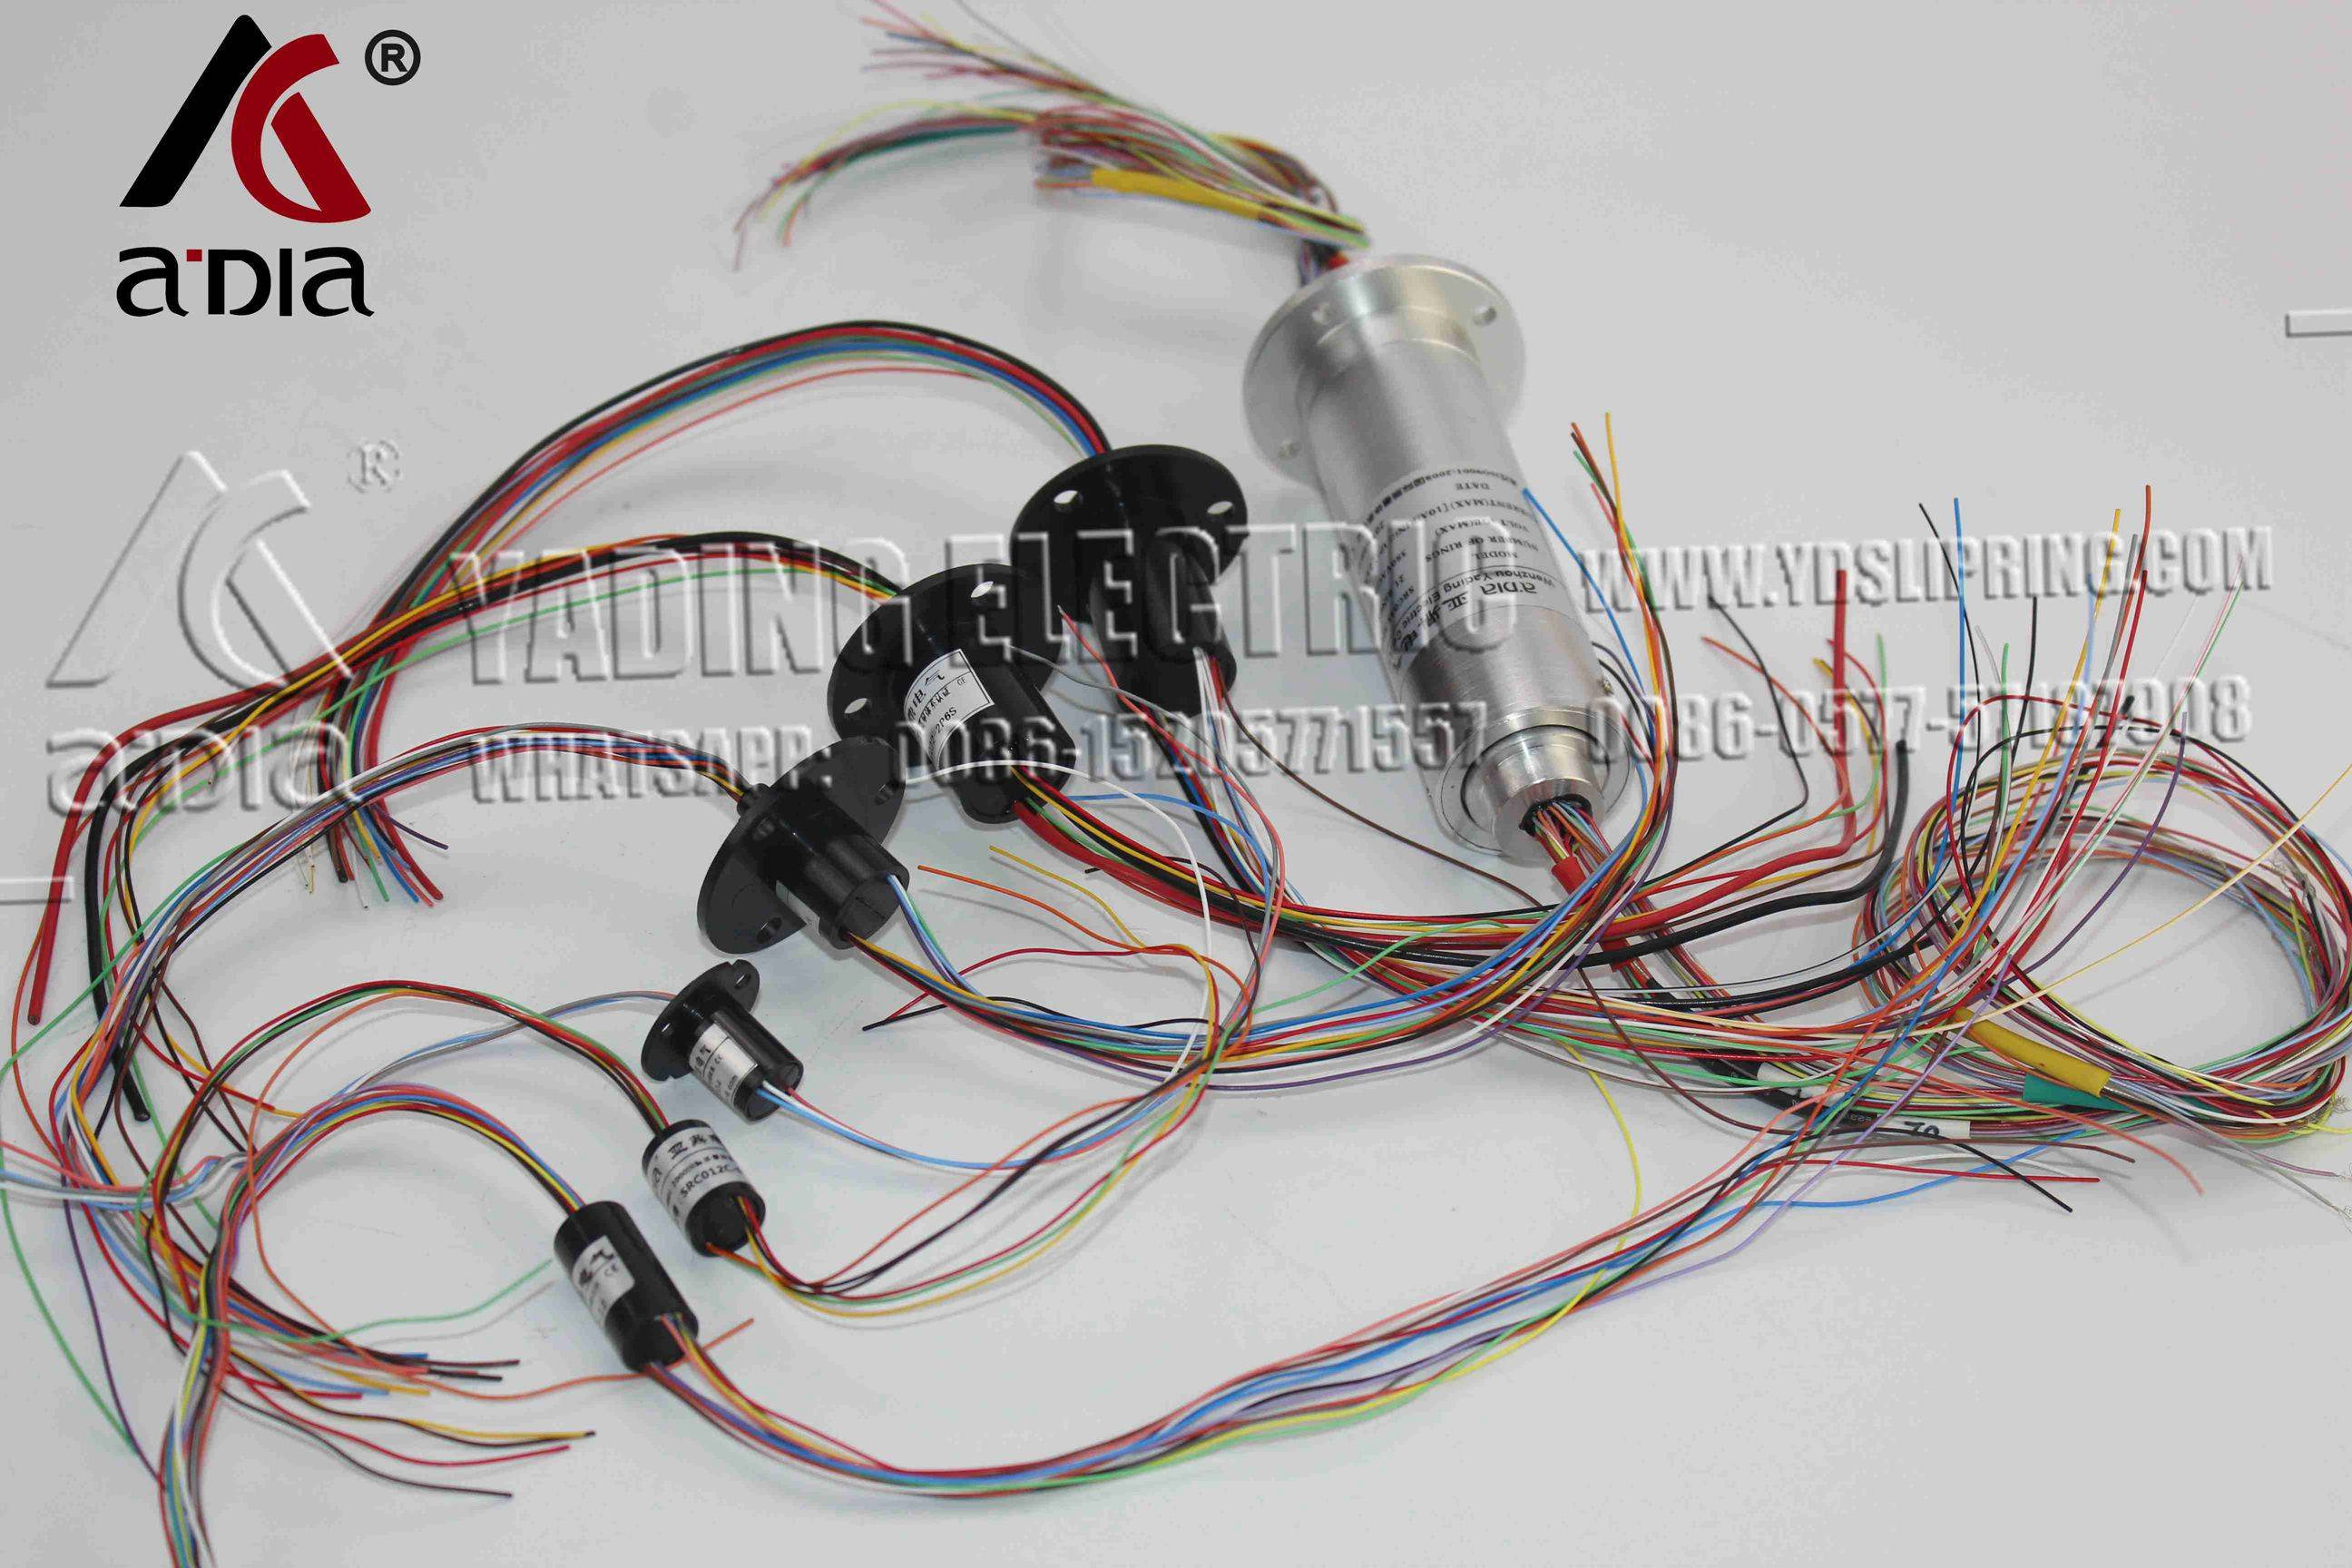 Capsule Slip Ring AC 240V for Monitor Robotic 12.5mm 300Rpm 6 Wires CIRCUITSx2A